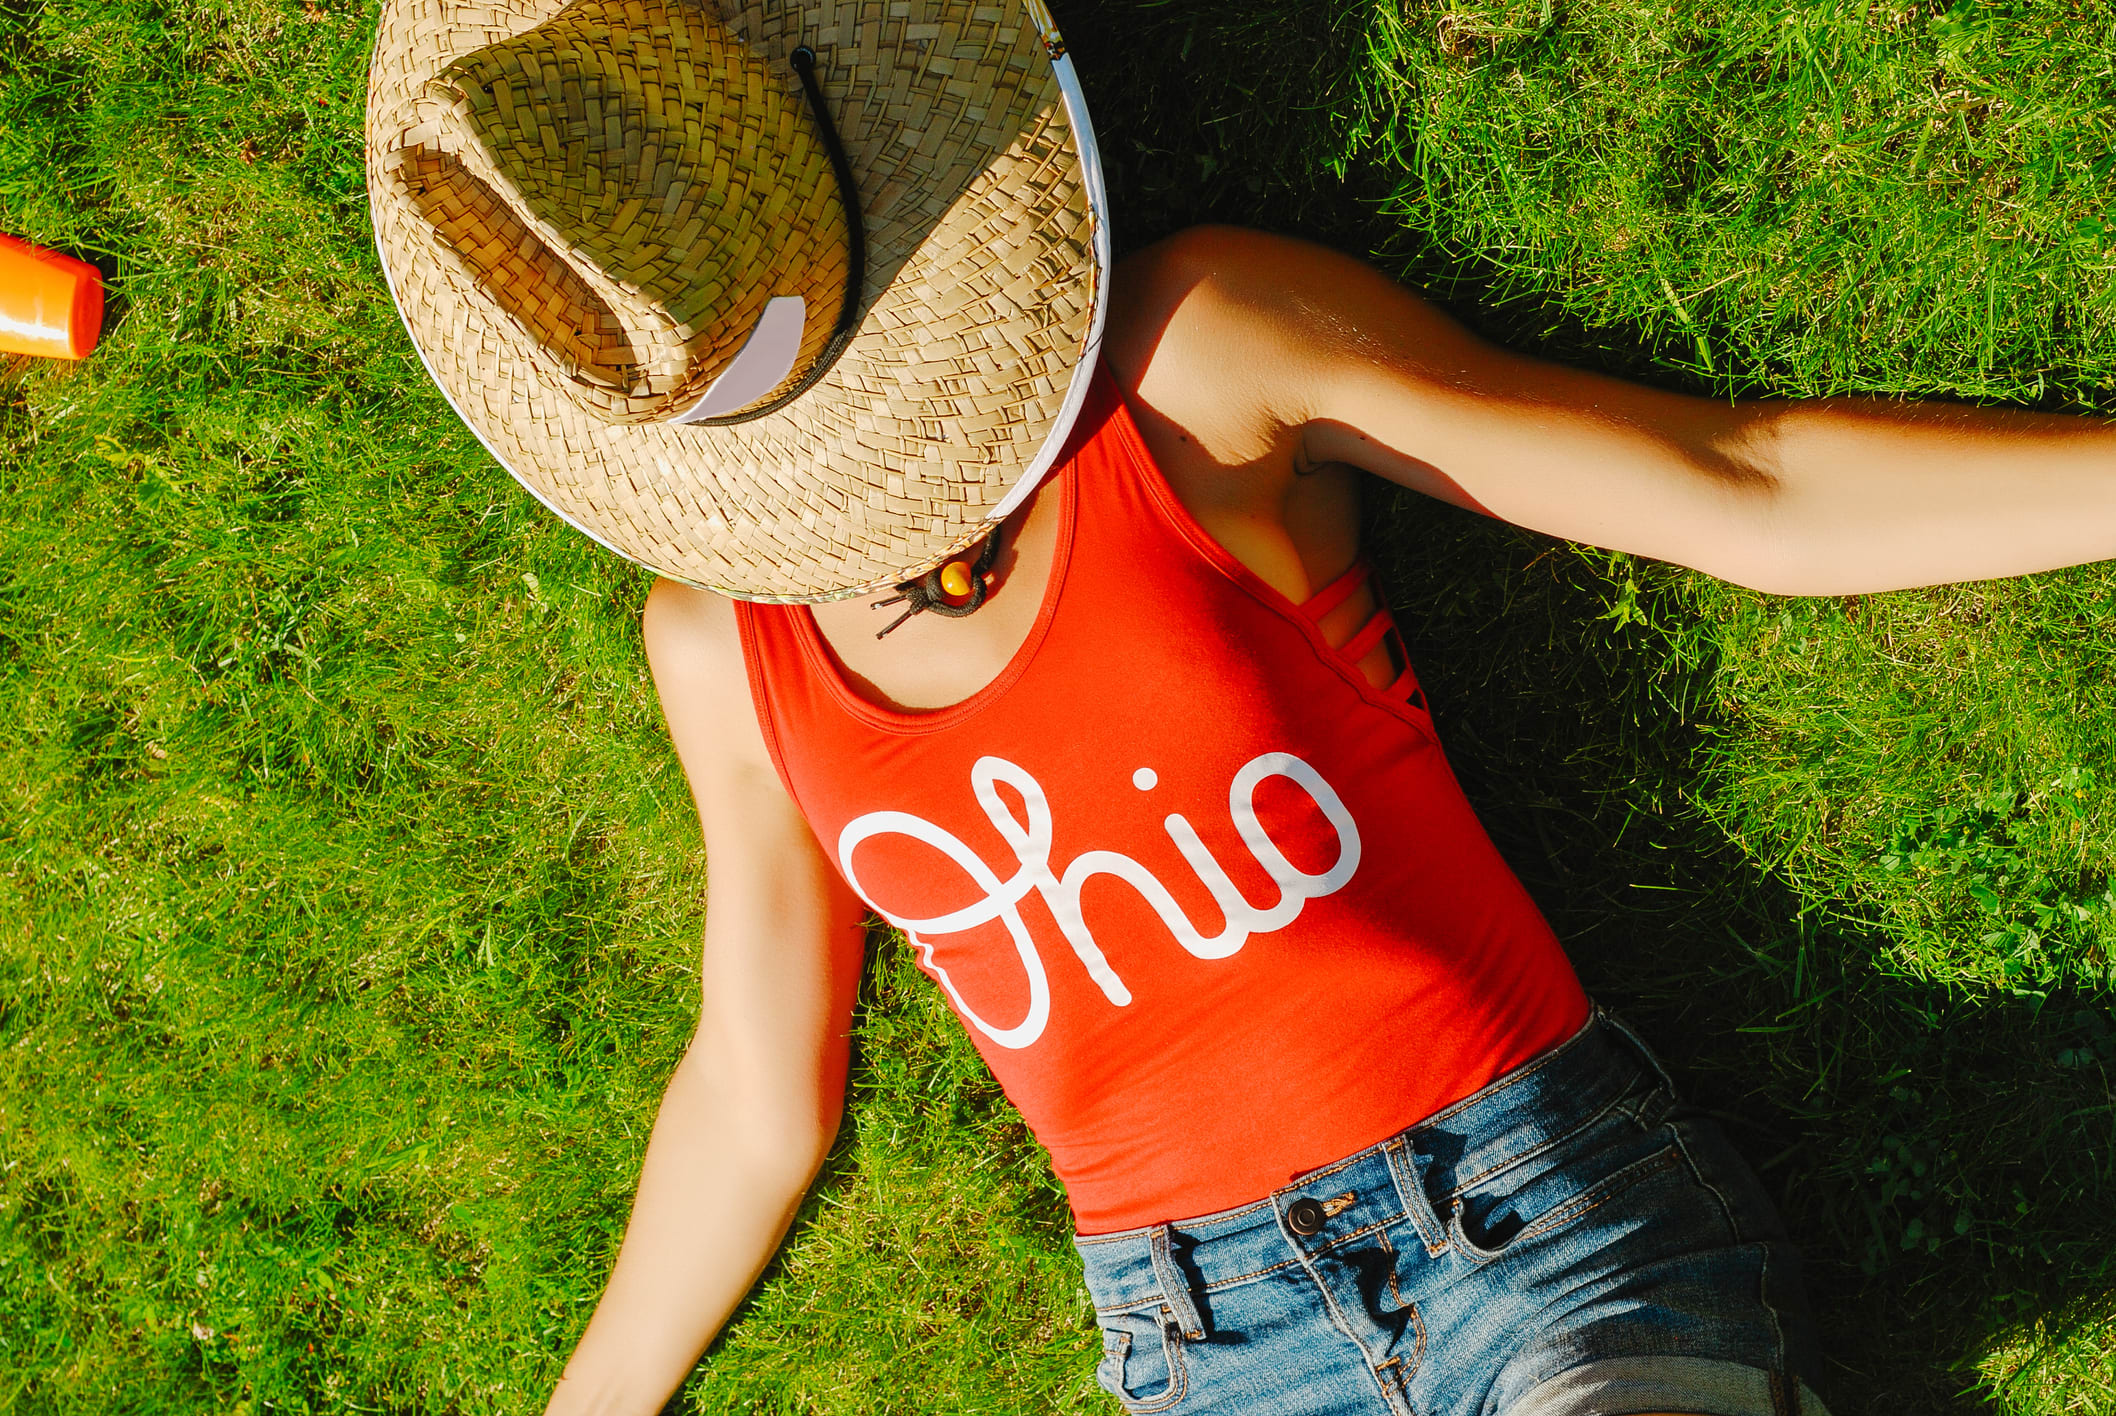 Woman in a Red Ohio Shirt